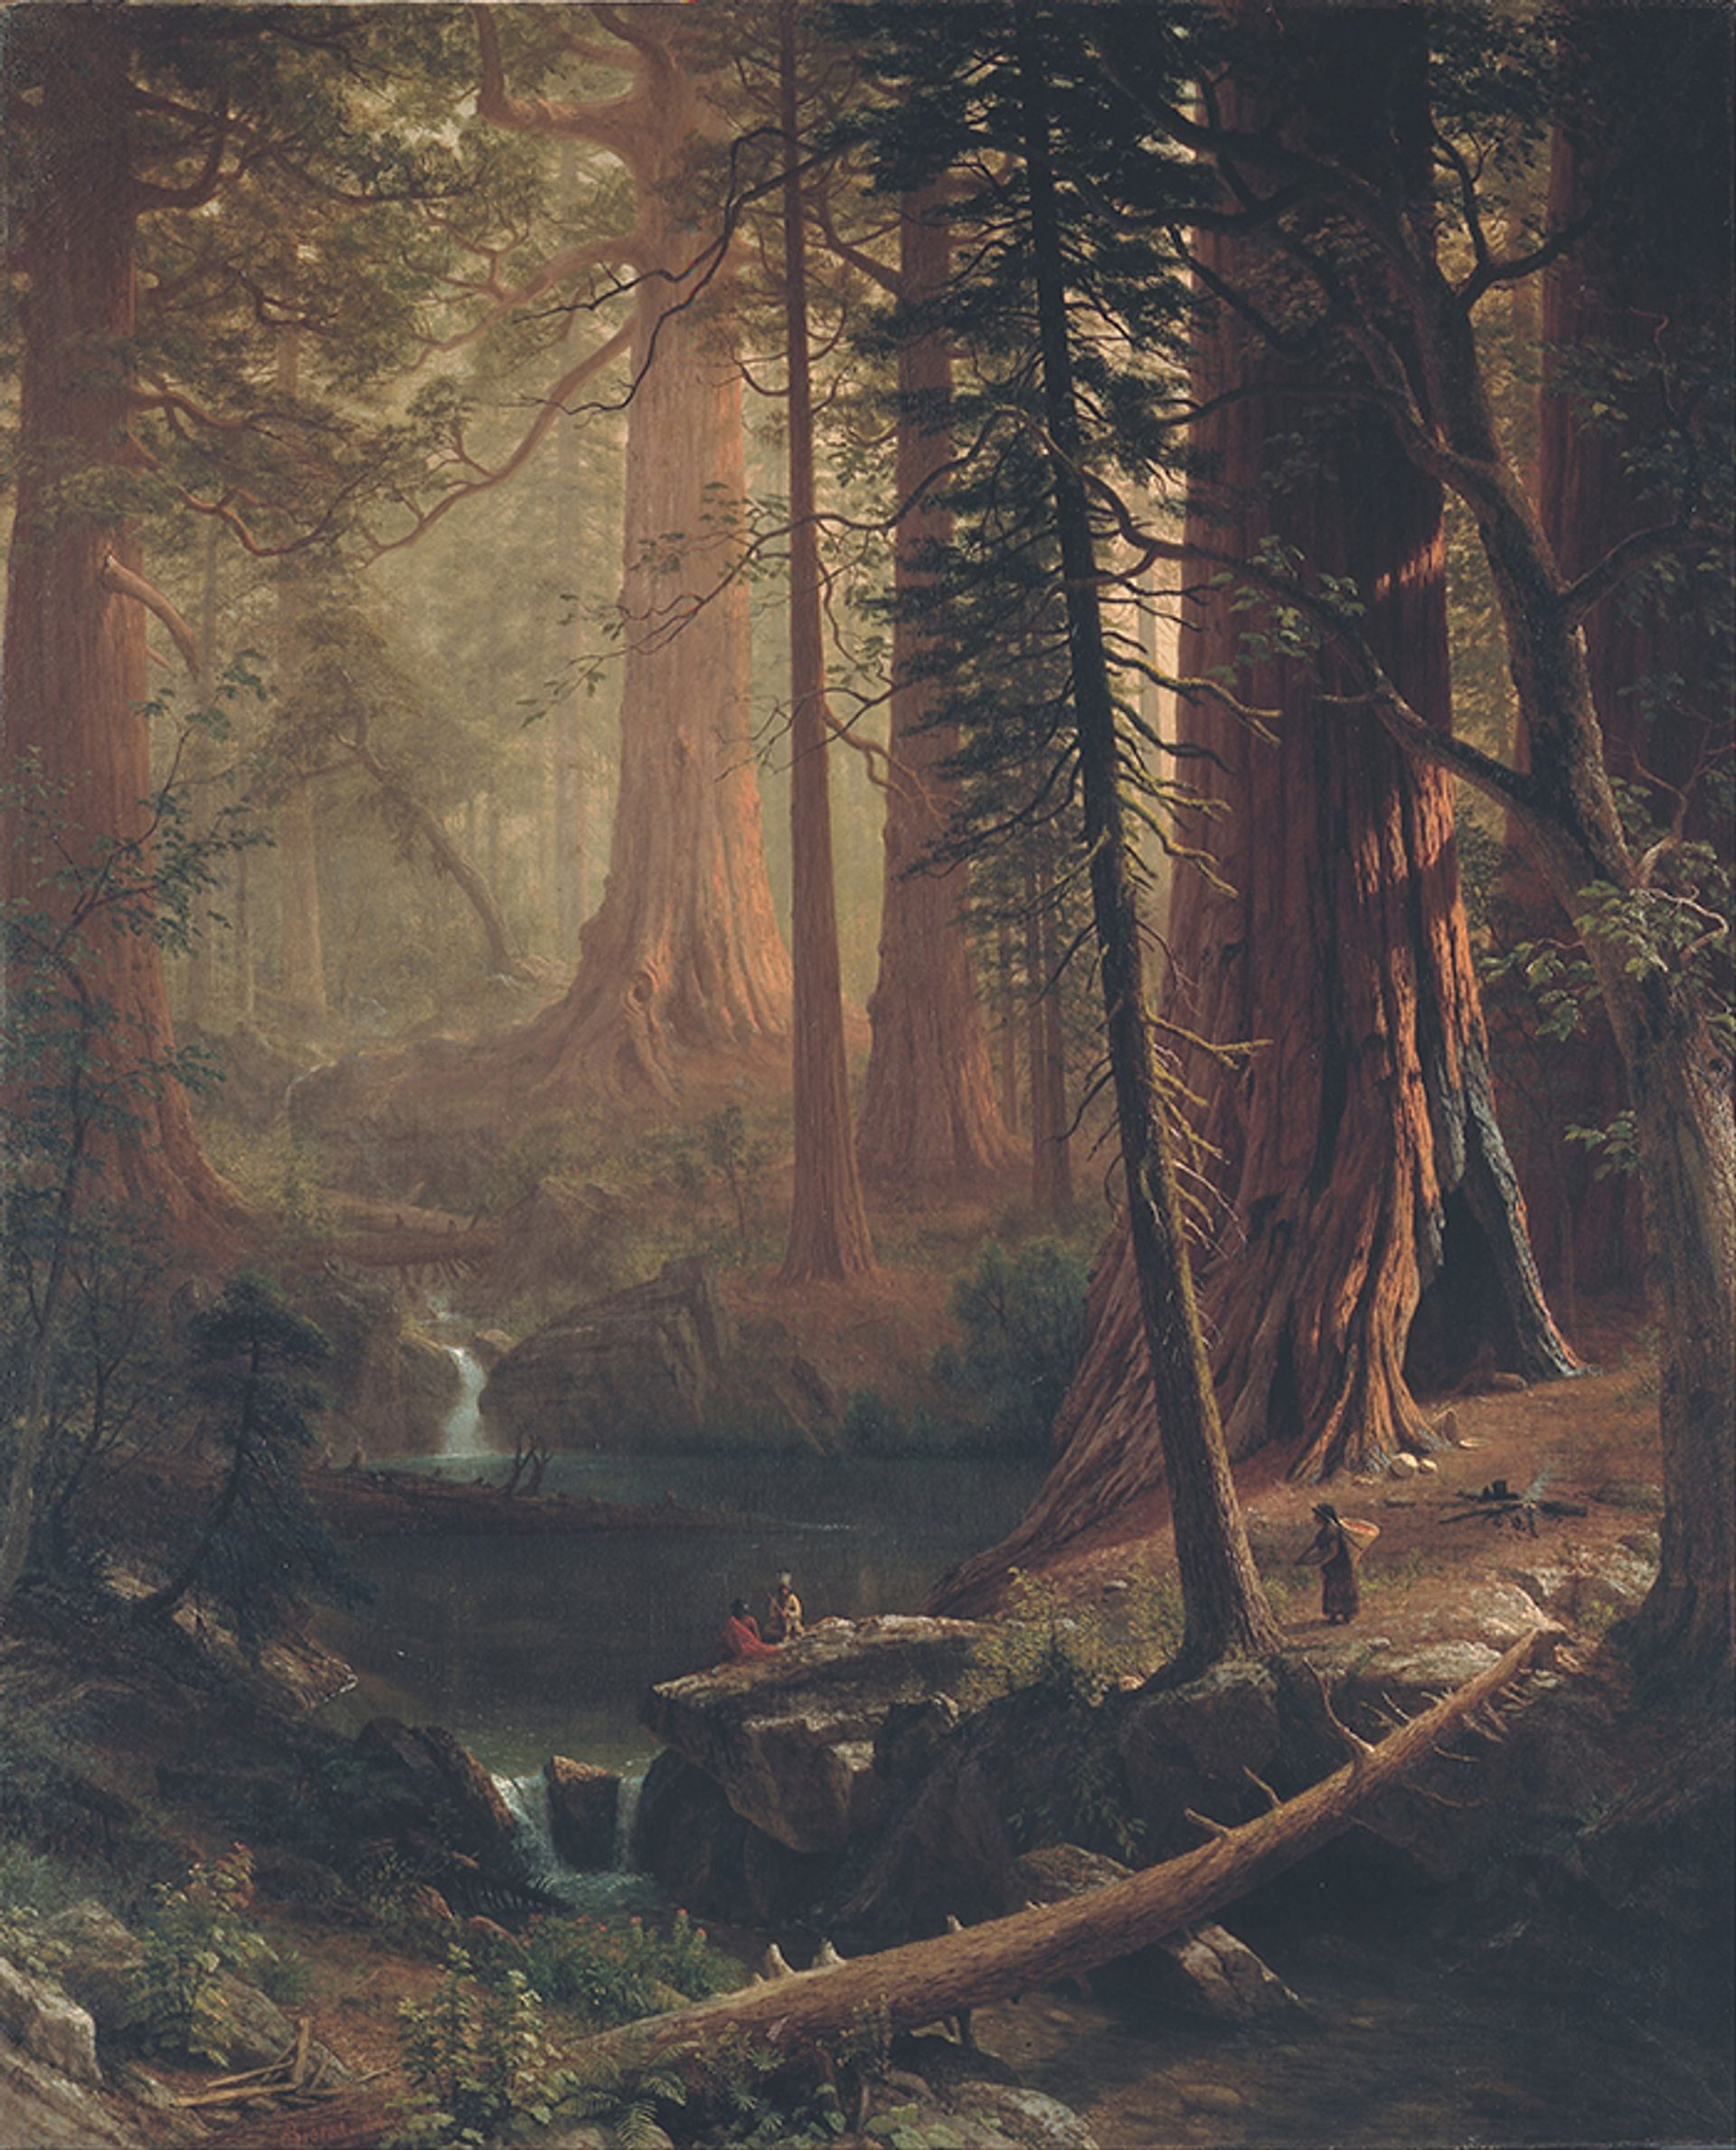 Giant Redwood Trees of California (1874) by Albert Bierstadt is one of the nine works The Berkshire Museum will sell off in the coming months Wikimedia Commons